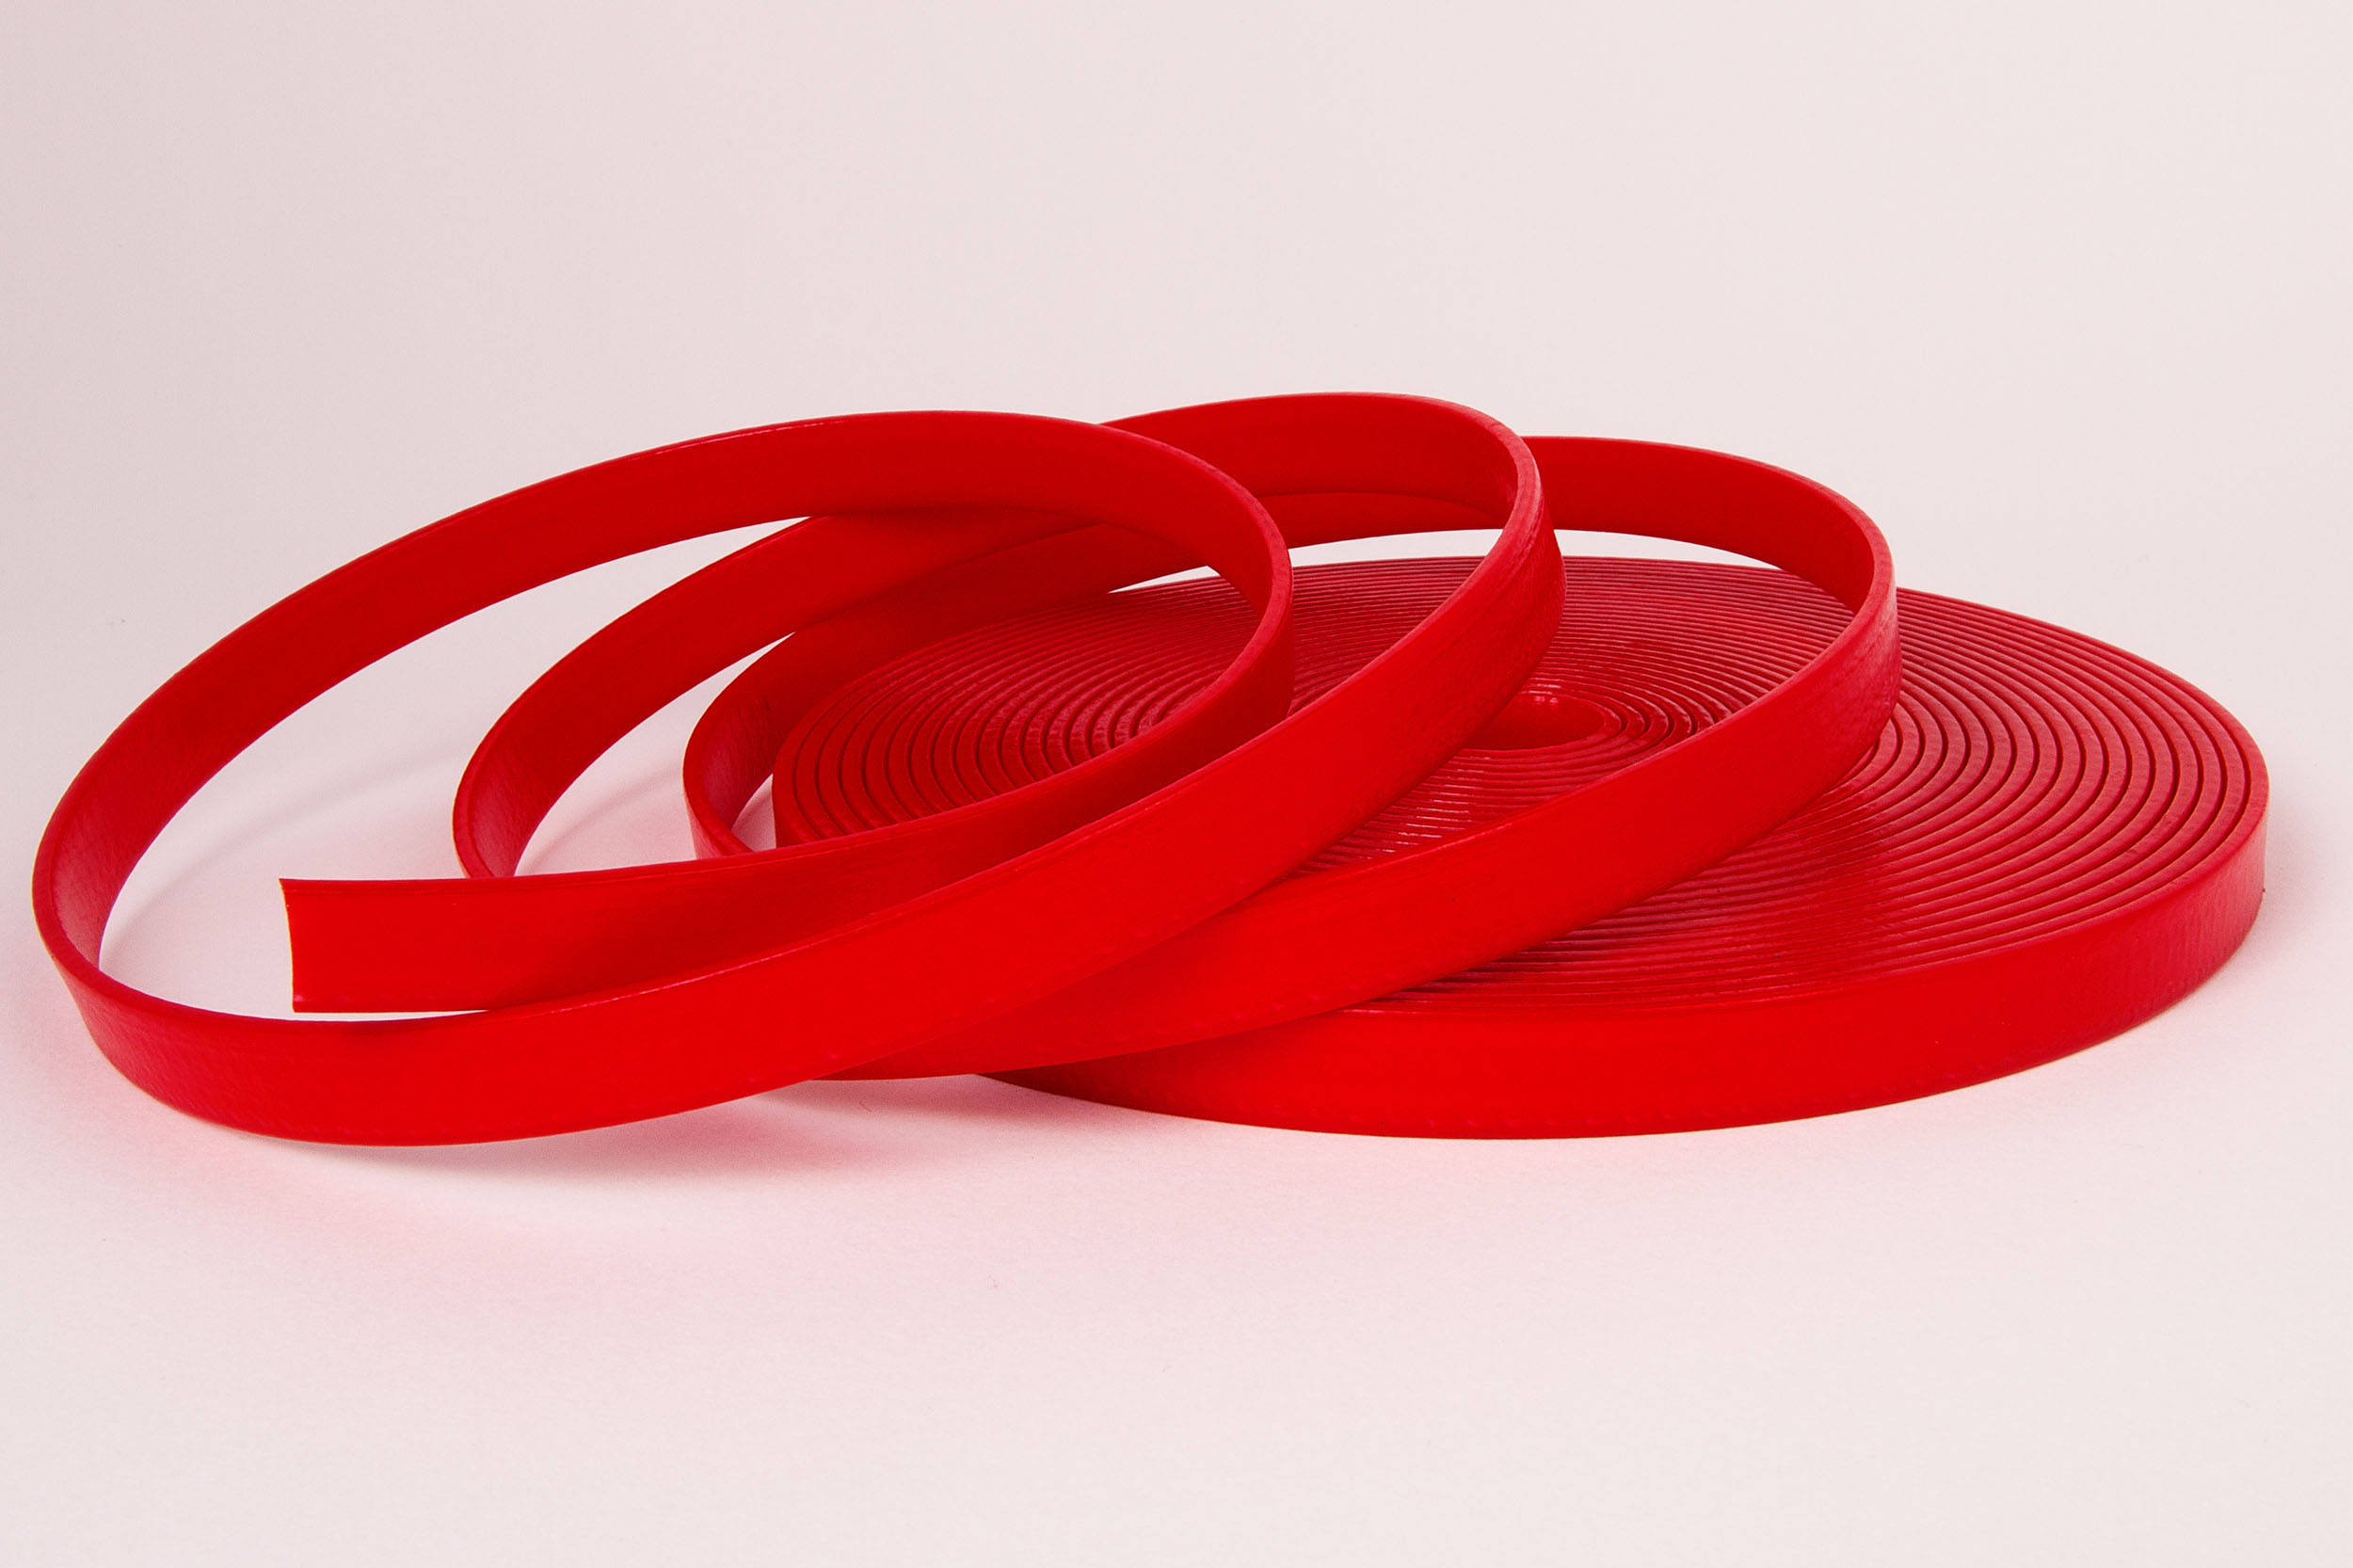 PVC-Coated-Webbing-12mm-Red 02.jpg